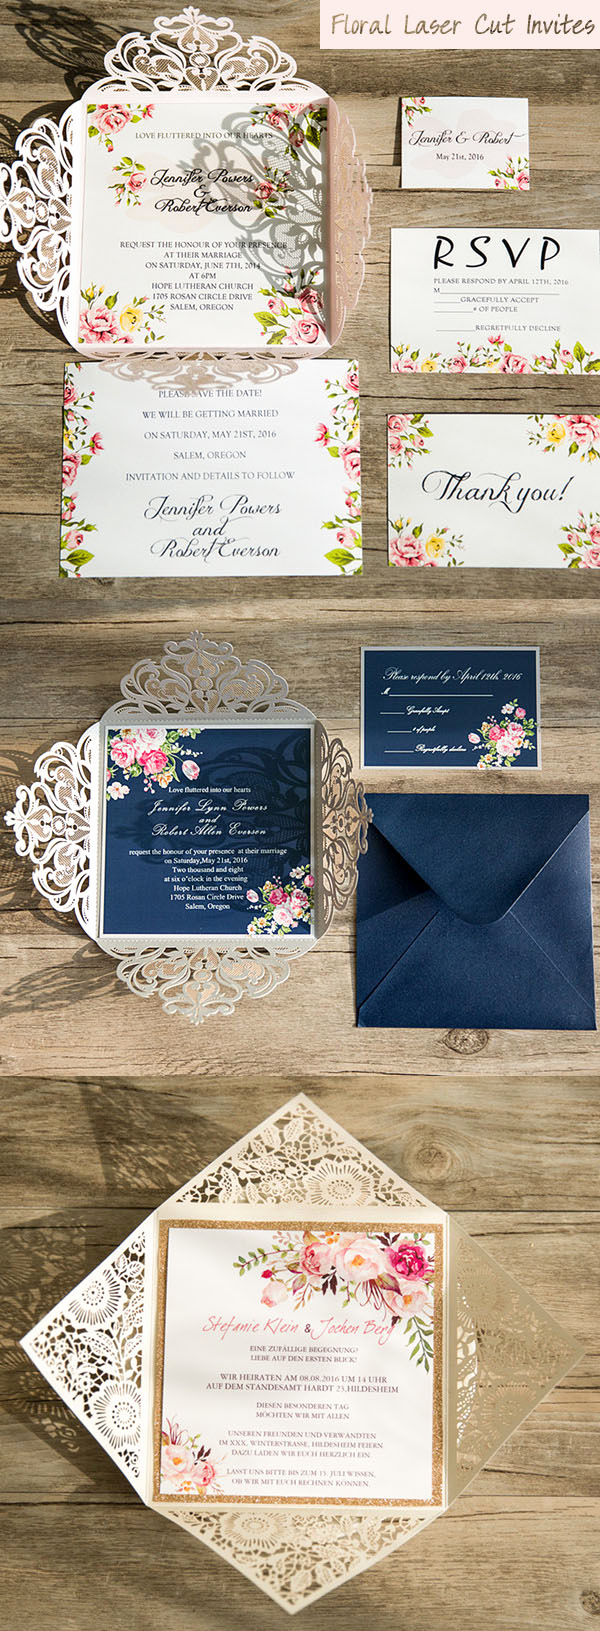 Wedding Invitation Trends 2017 Luxury top 10 Wedding Invitation Trends for 2017